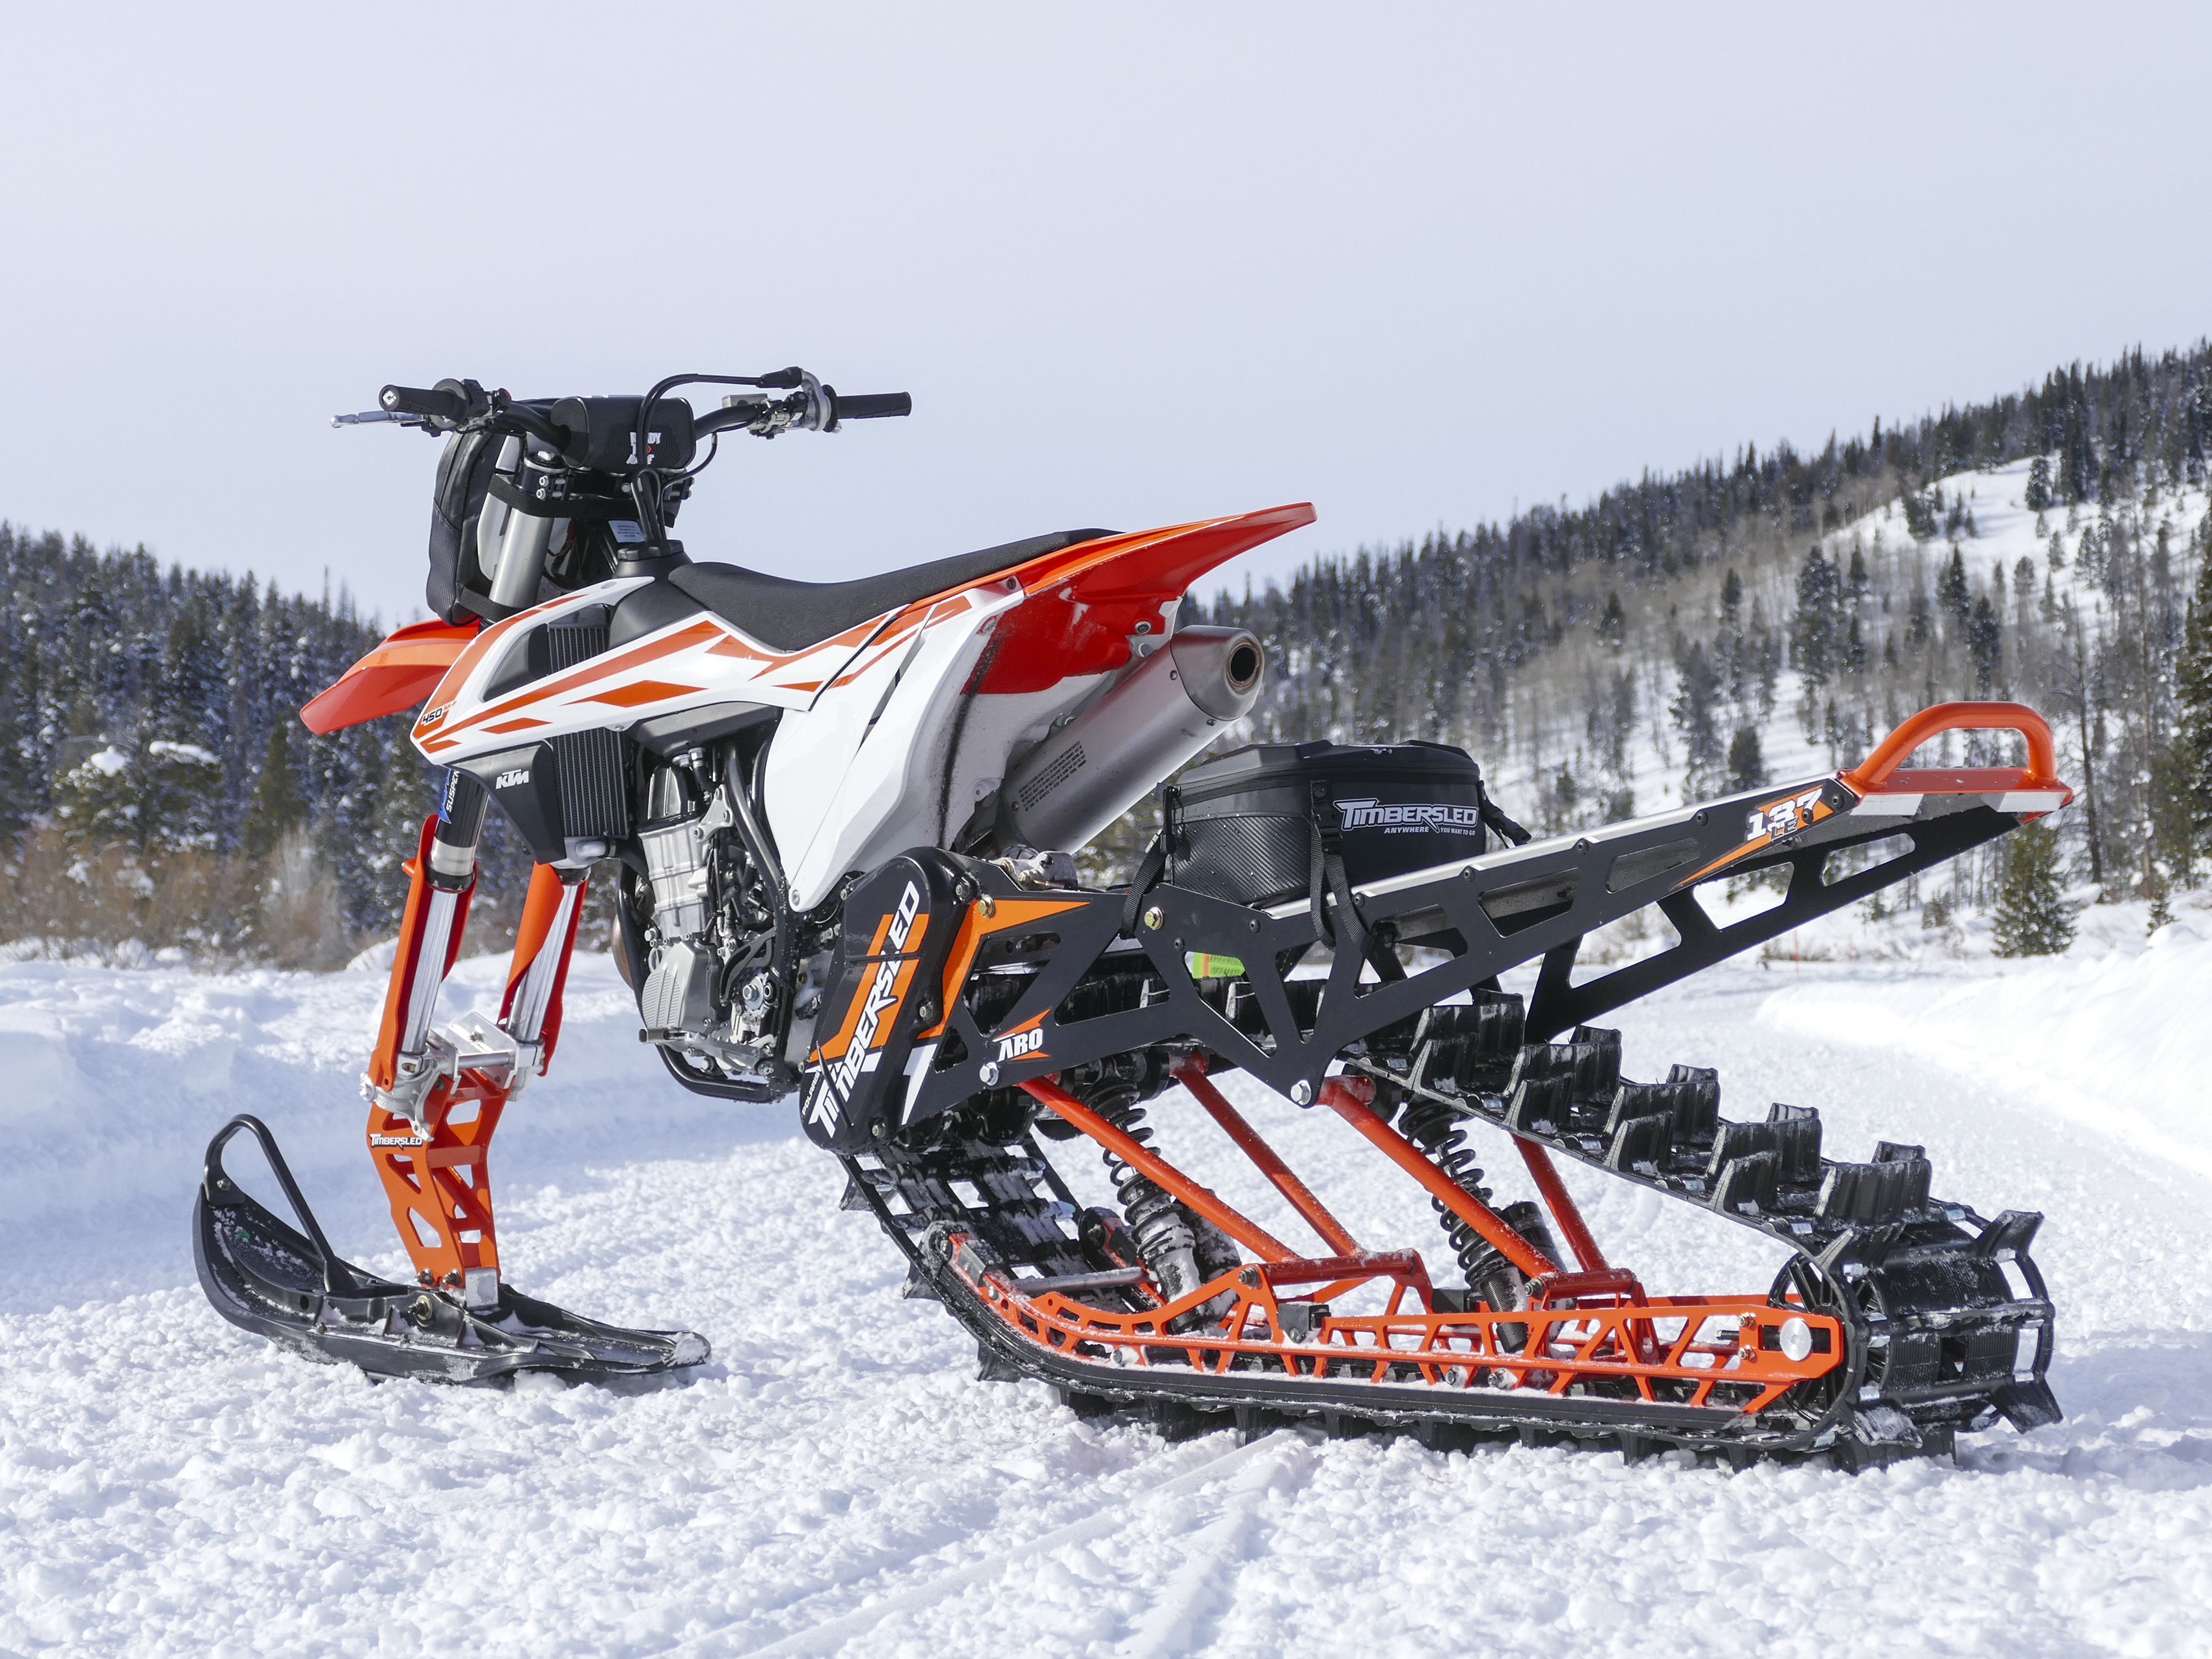 5 Things To Know About The 2018 Polaris Lineup